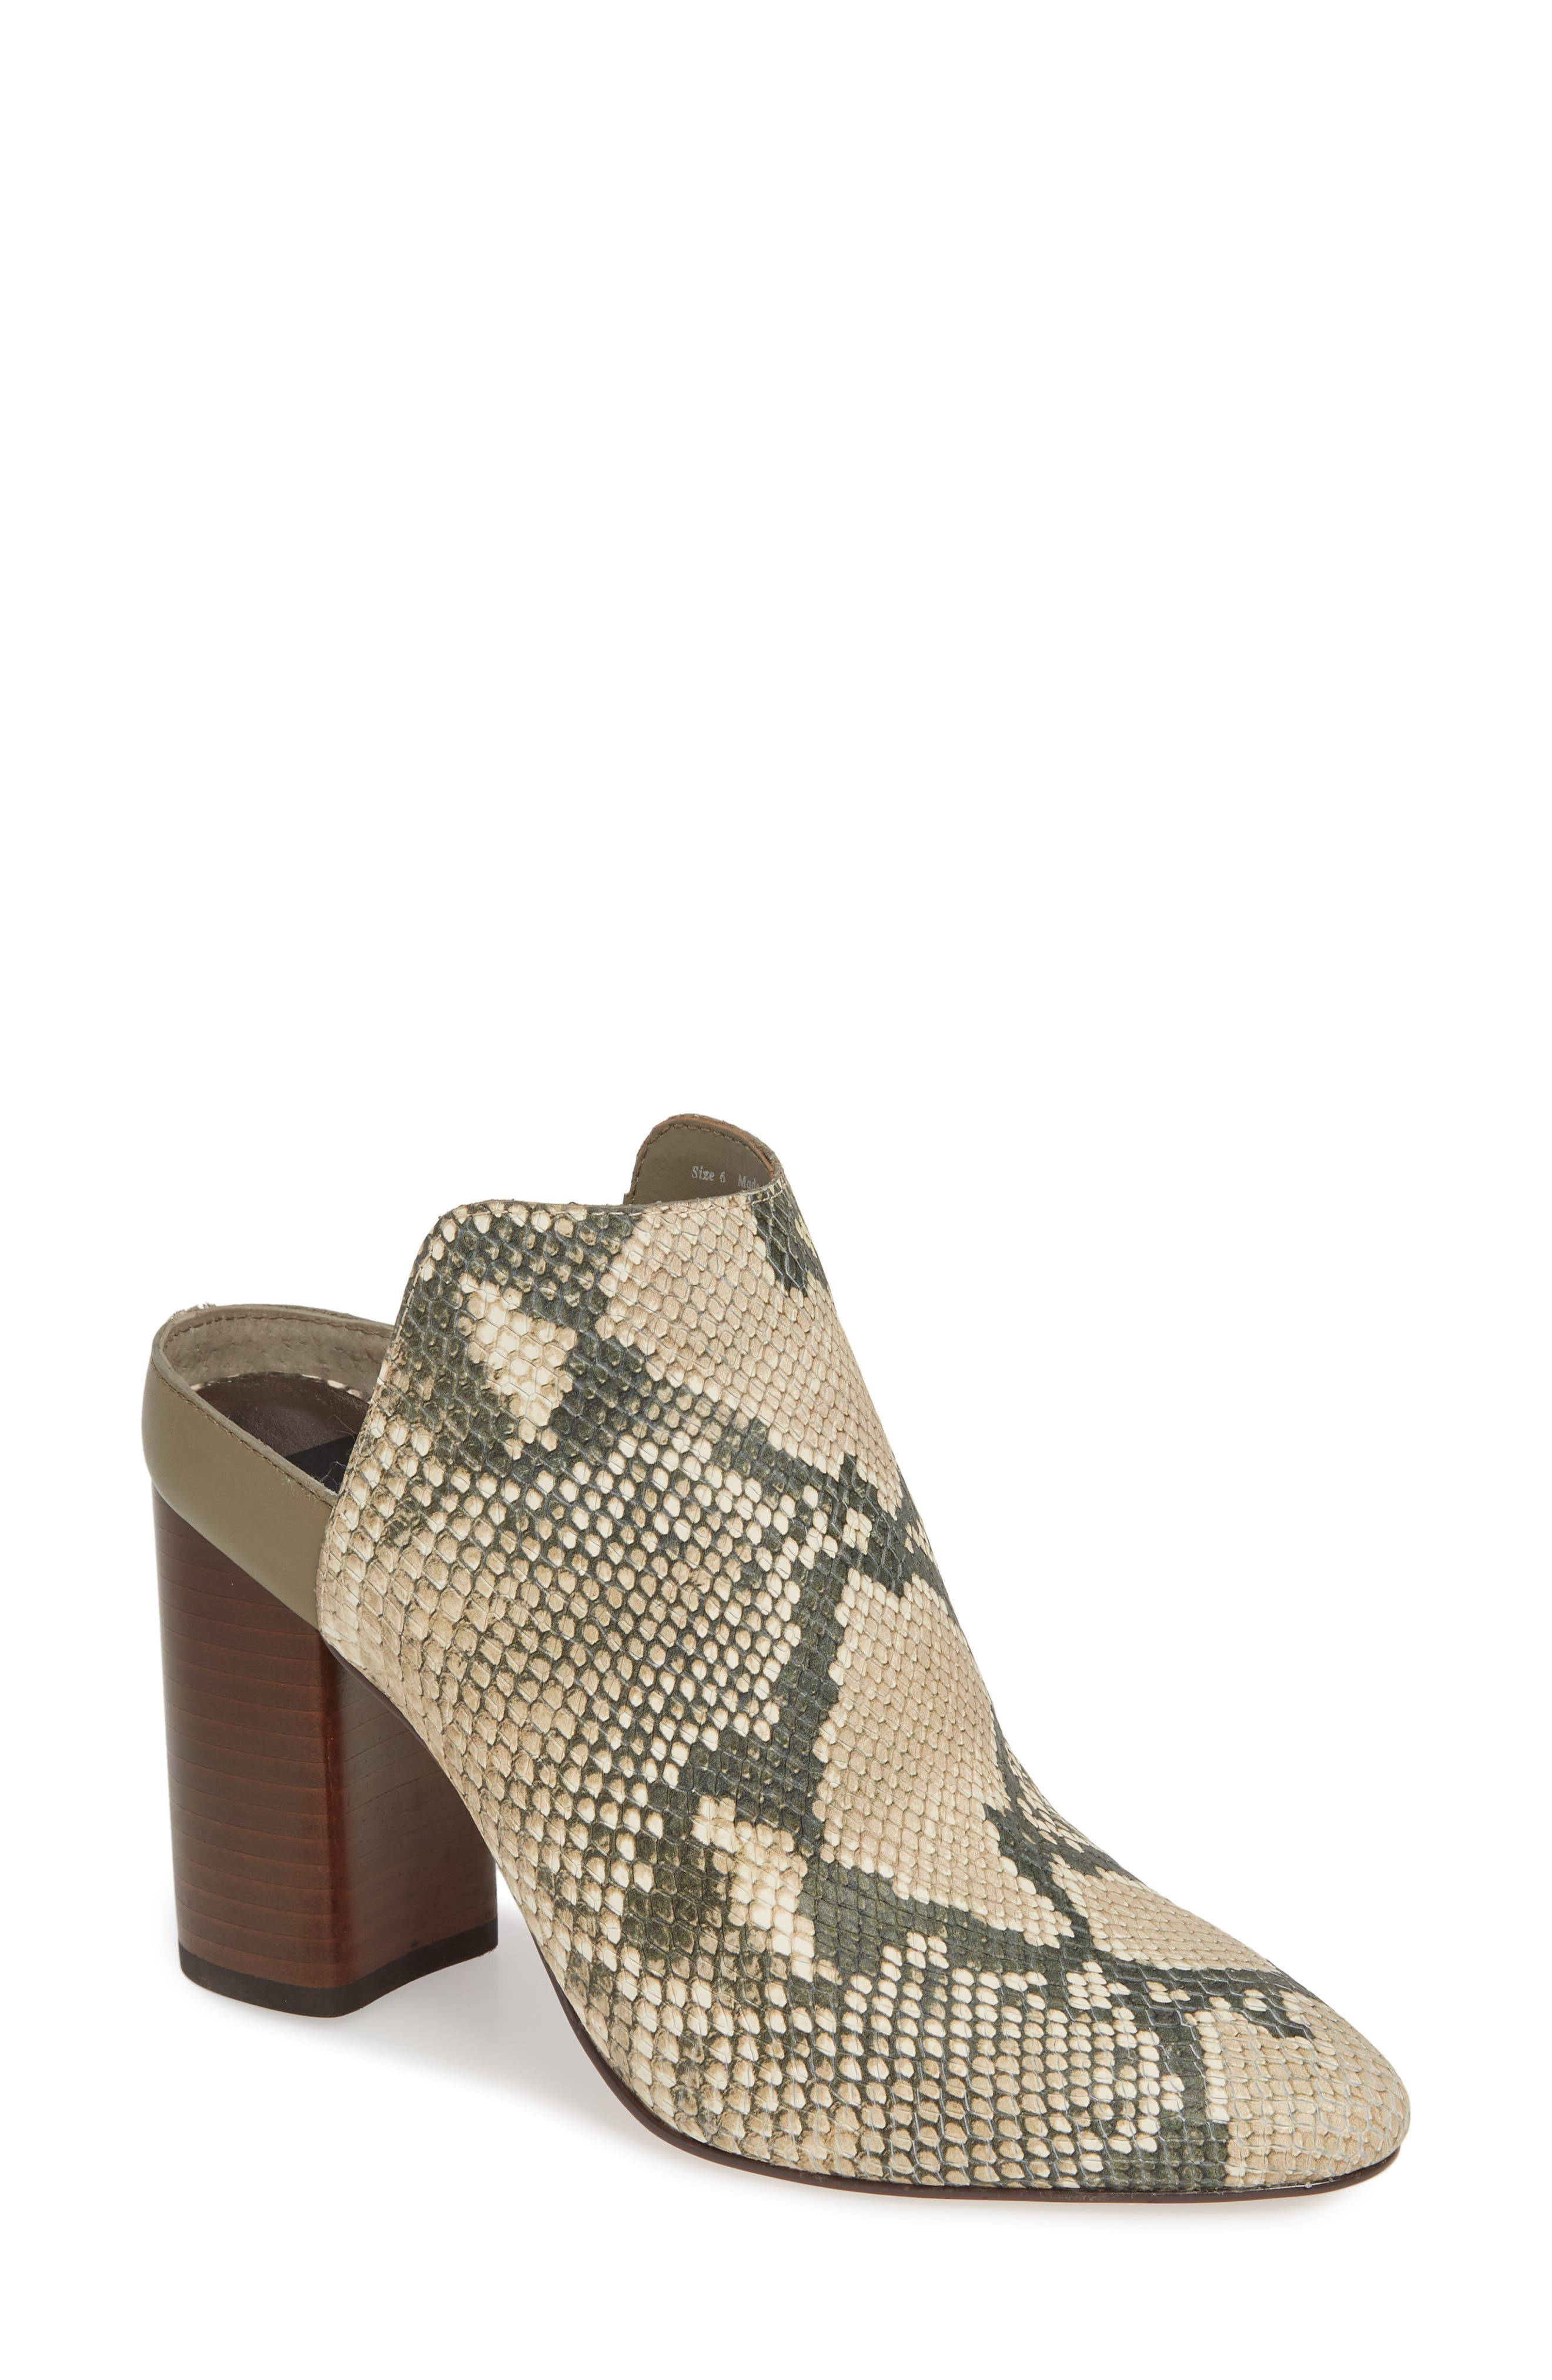 DOLCE VITA Renly Mule, Main, color, SNAKE PRINT LEATHER